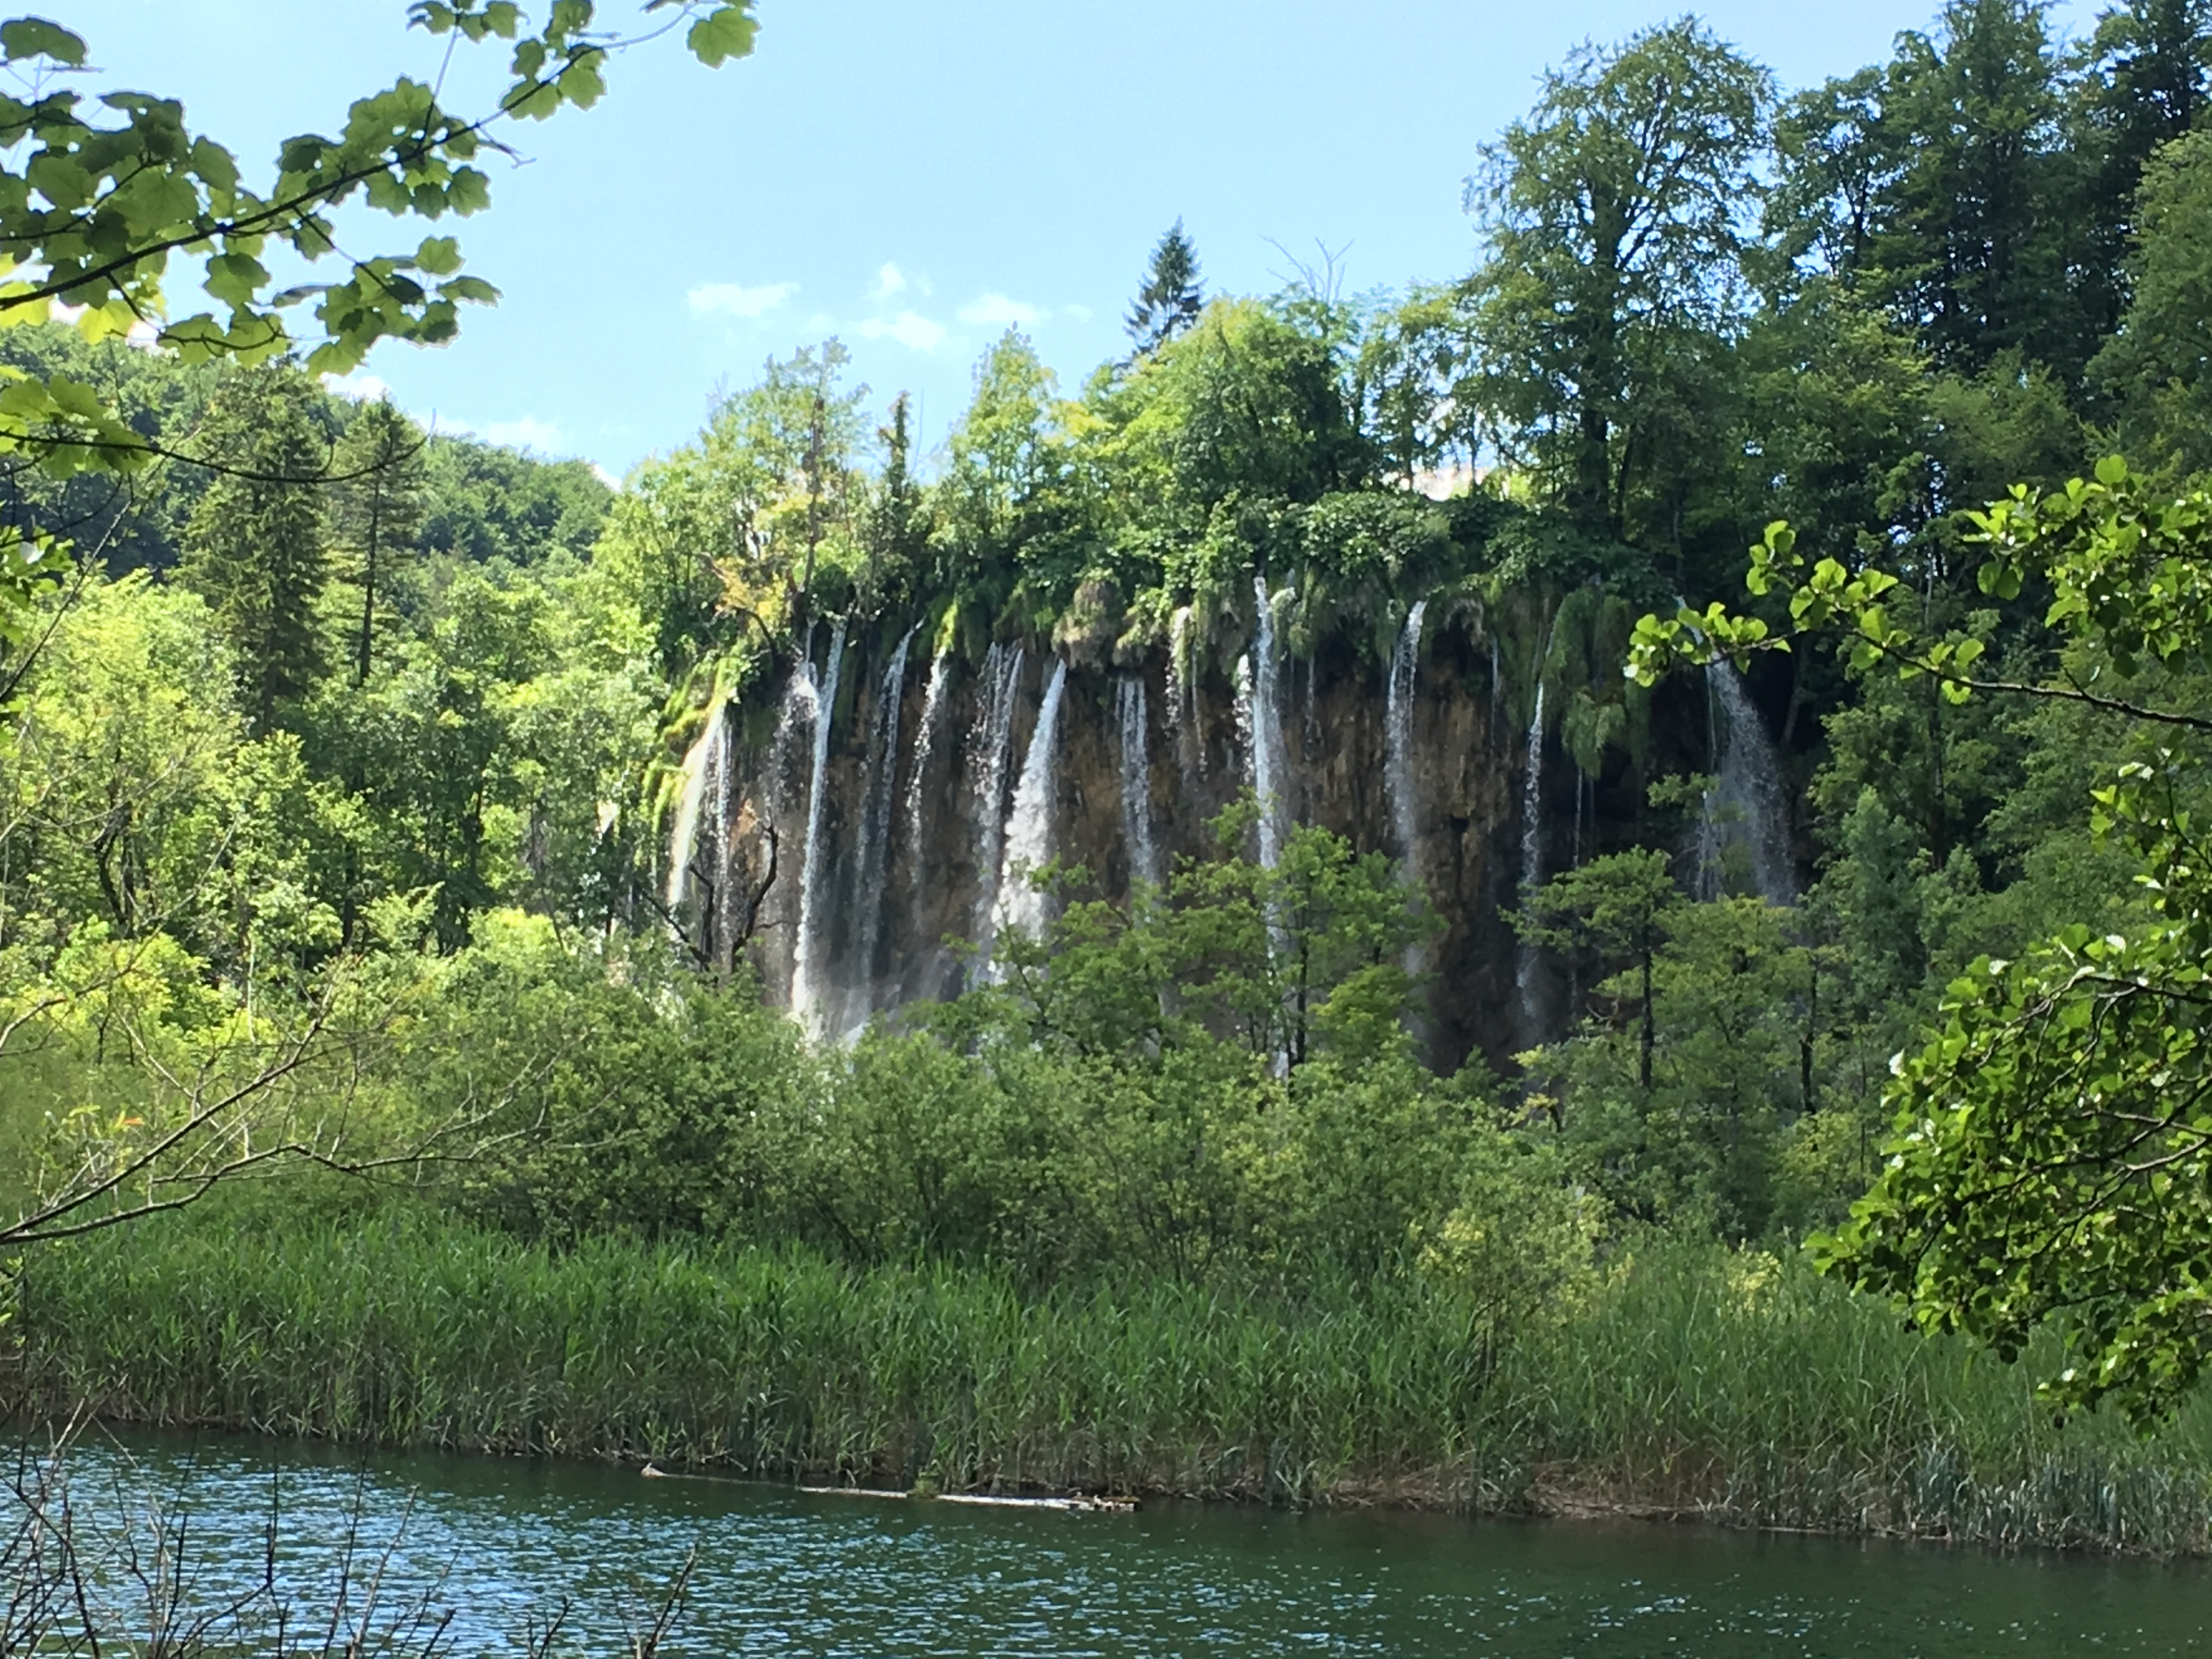 croatia-plitvice-lakes-national-park-waterfalls